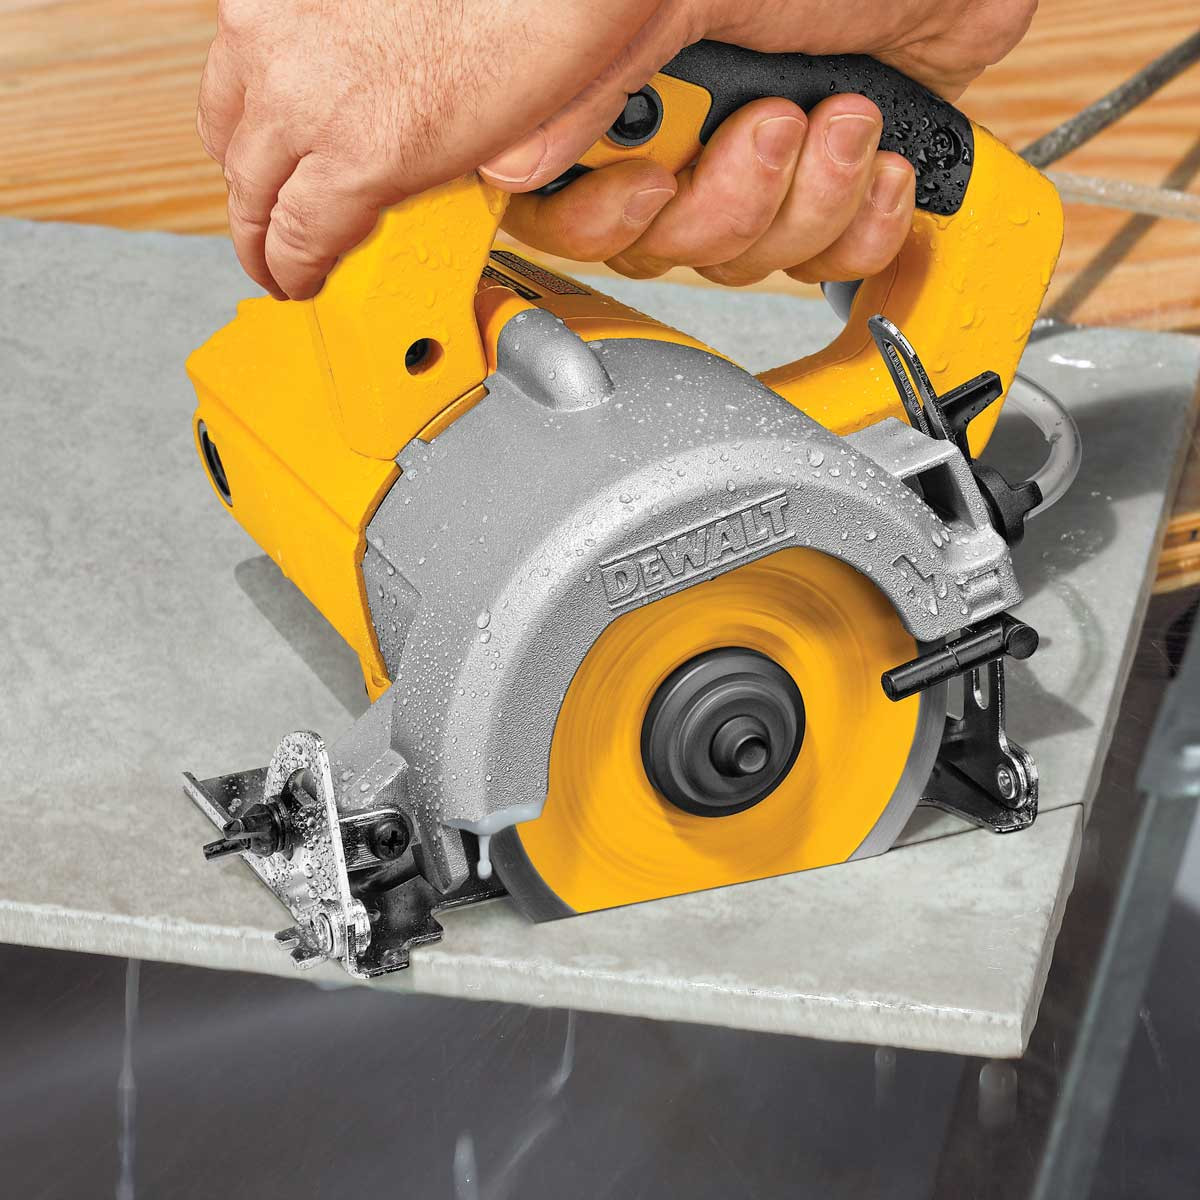 Dewalt hand-held tile saw diagonal cut